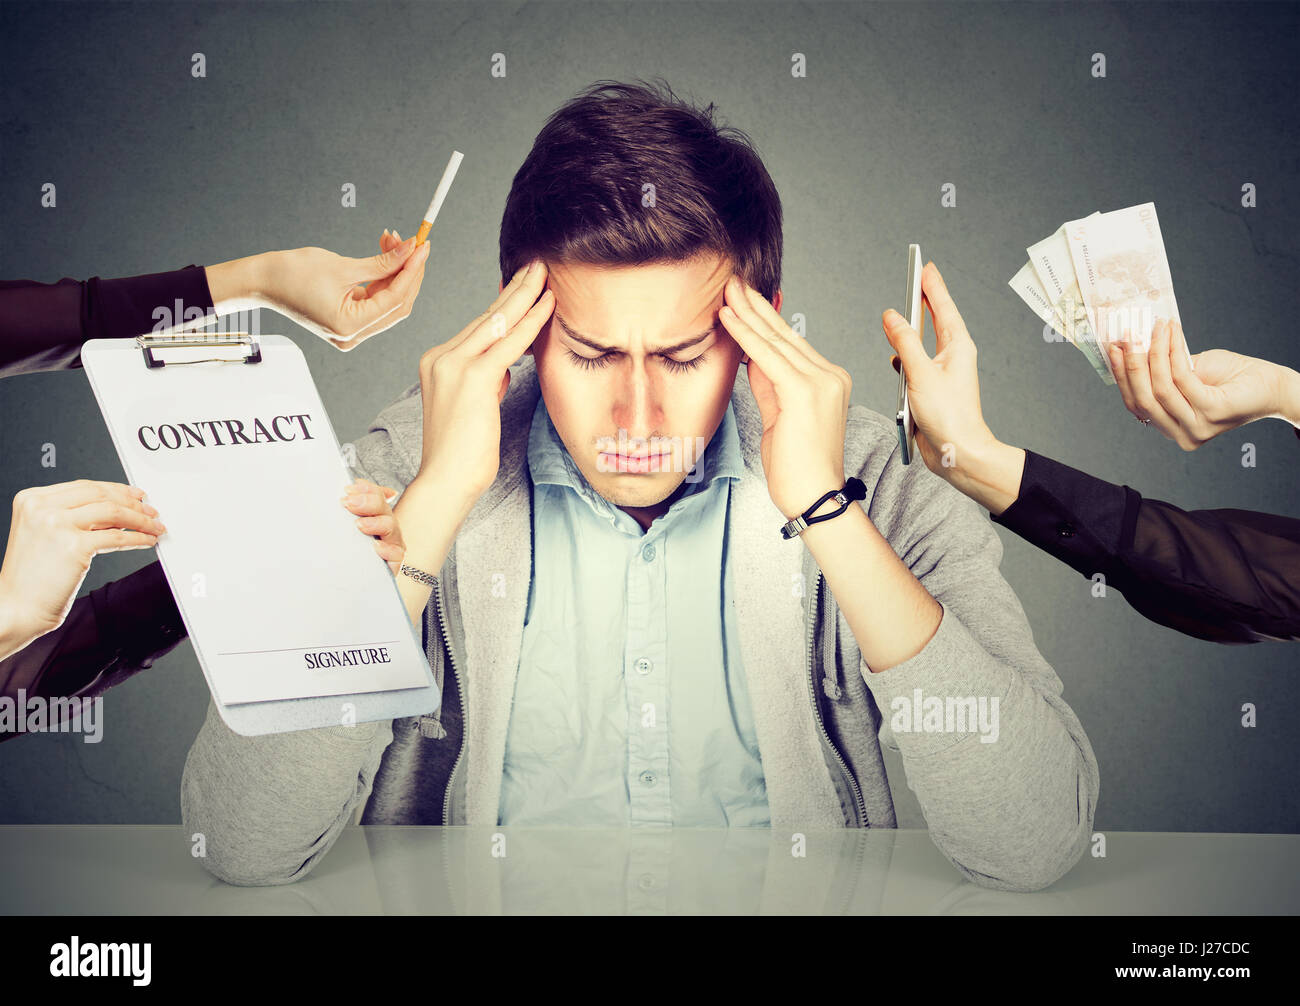 Desperate sad young man leaning on a desk. Stressed guy overwhelmed by things errands should be done. Human face - Stock Image